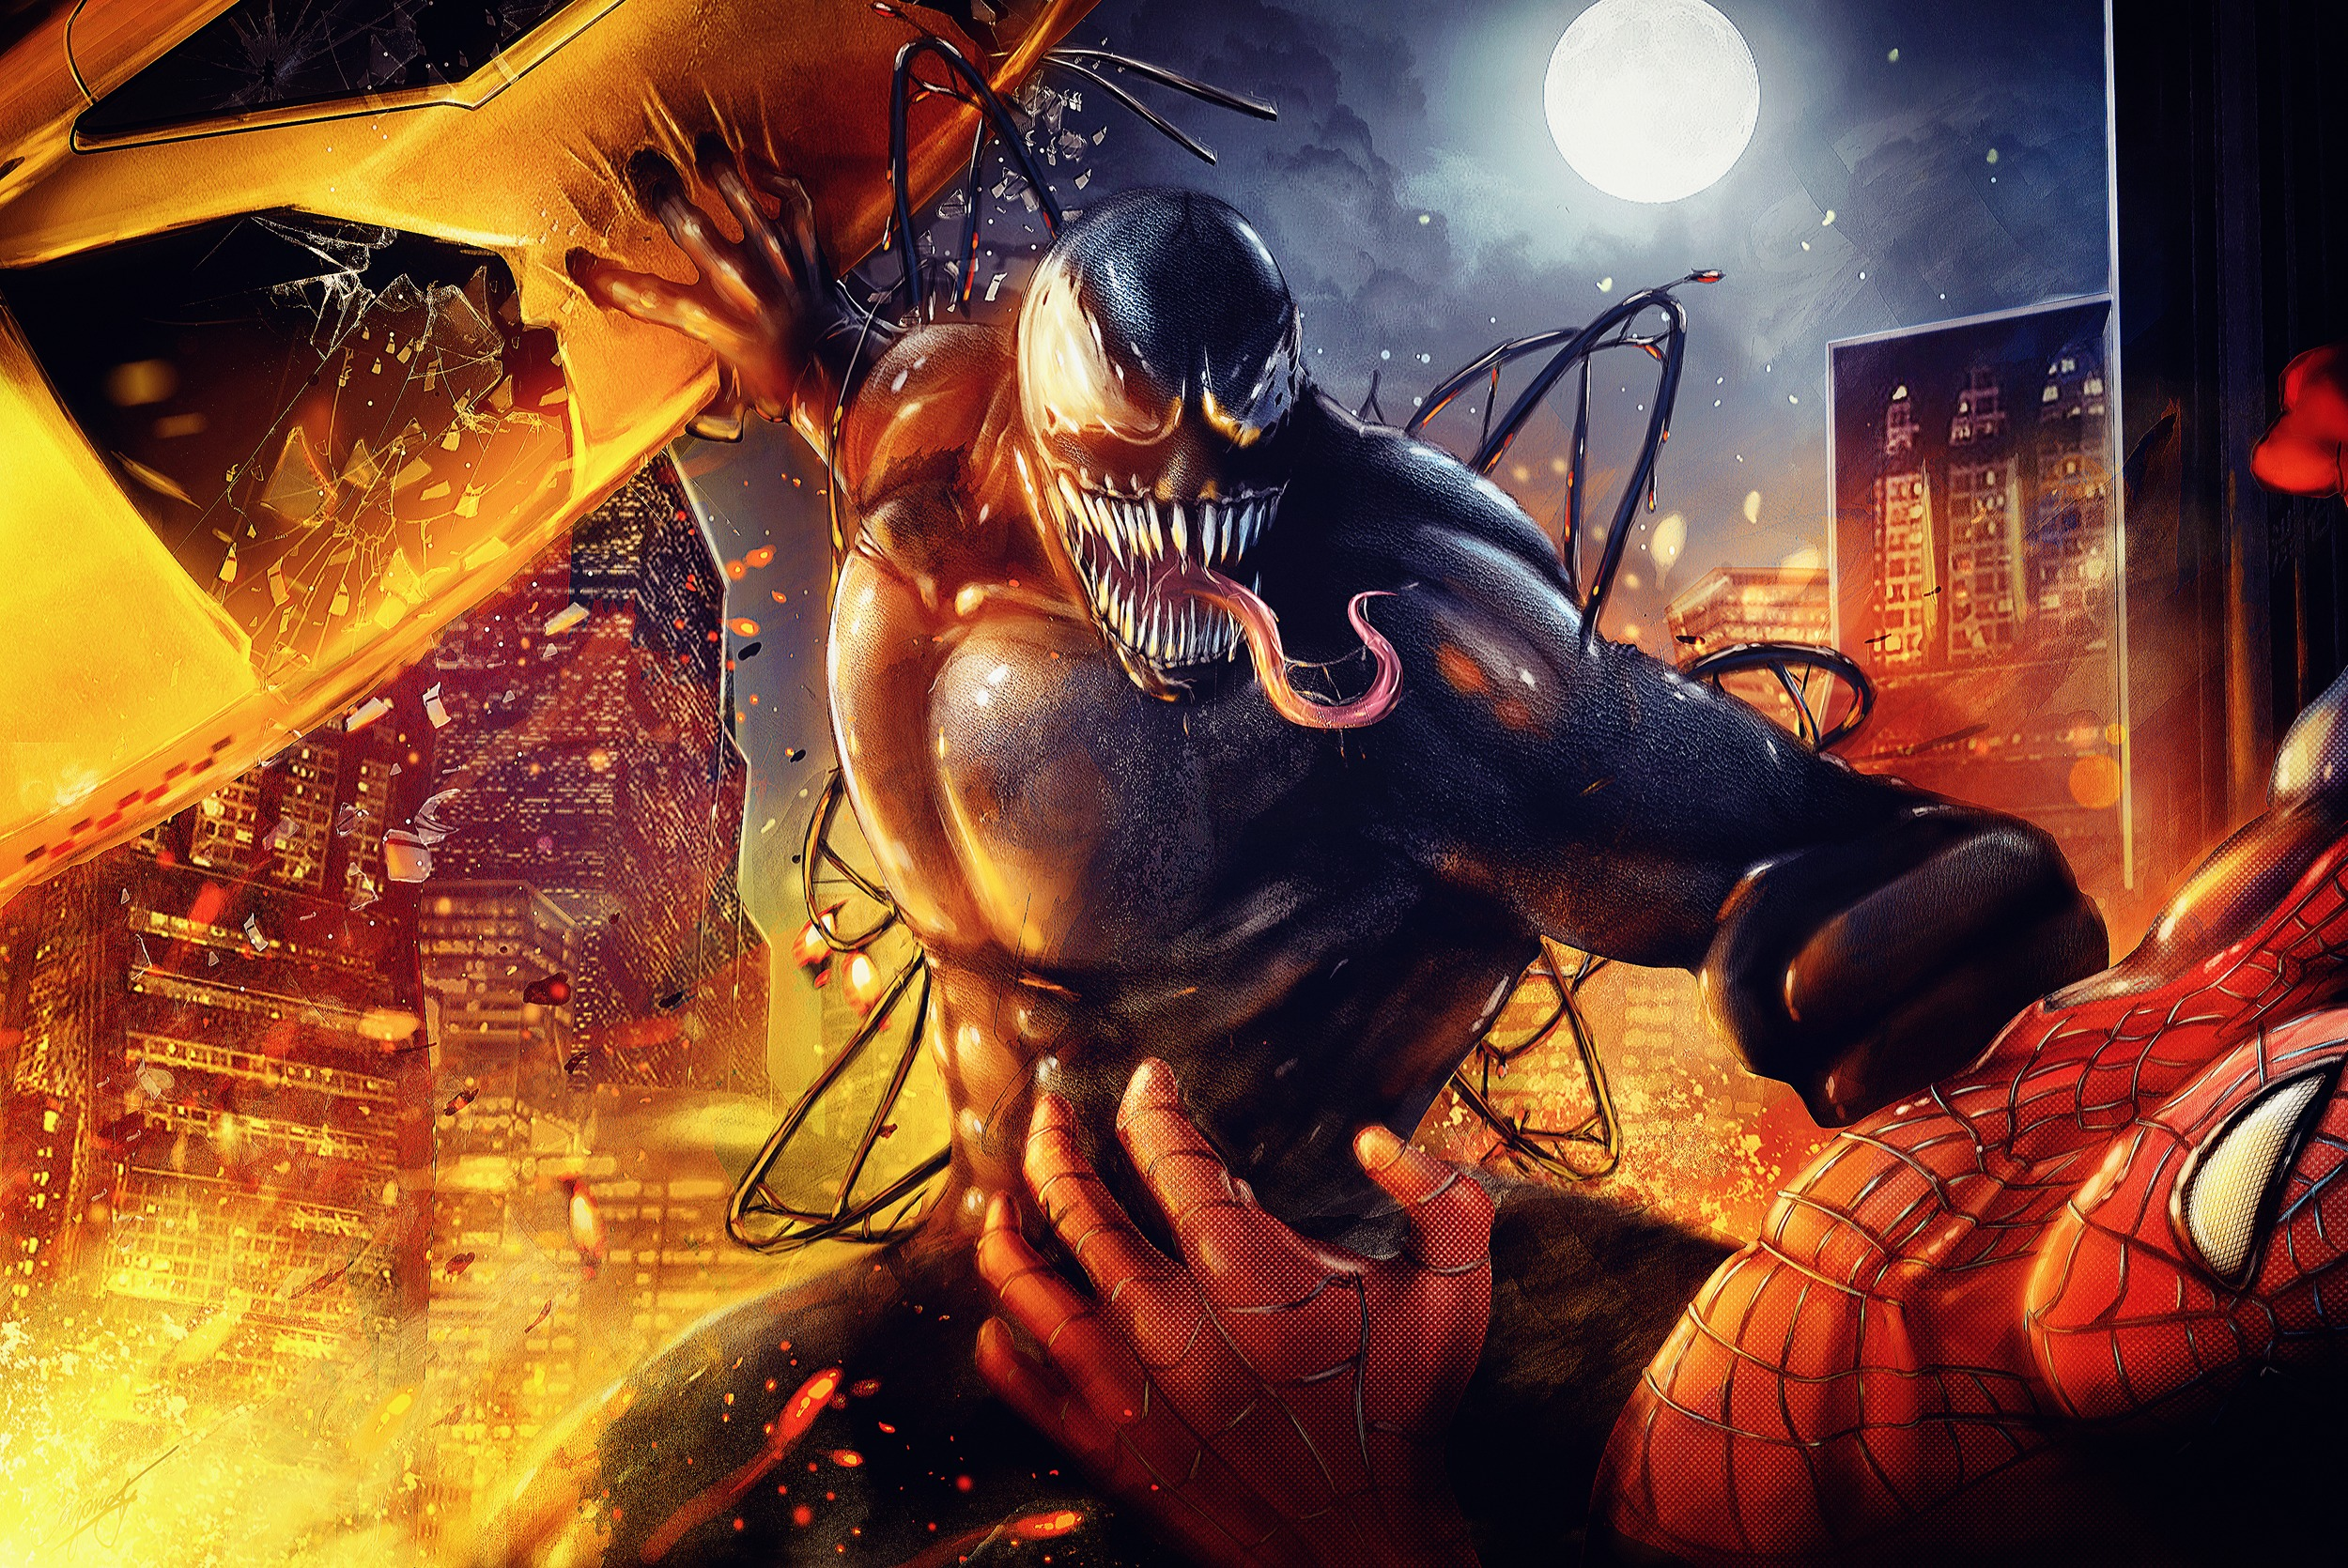 Venom y Spiderman luchando